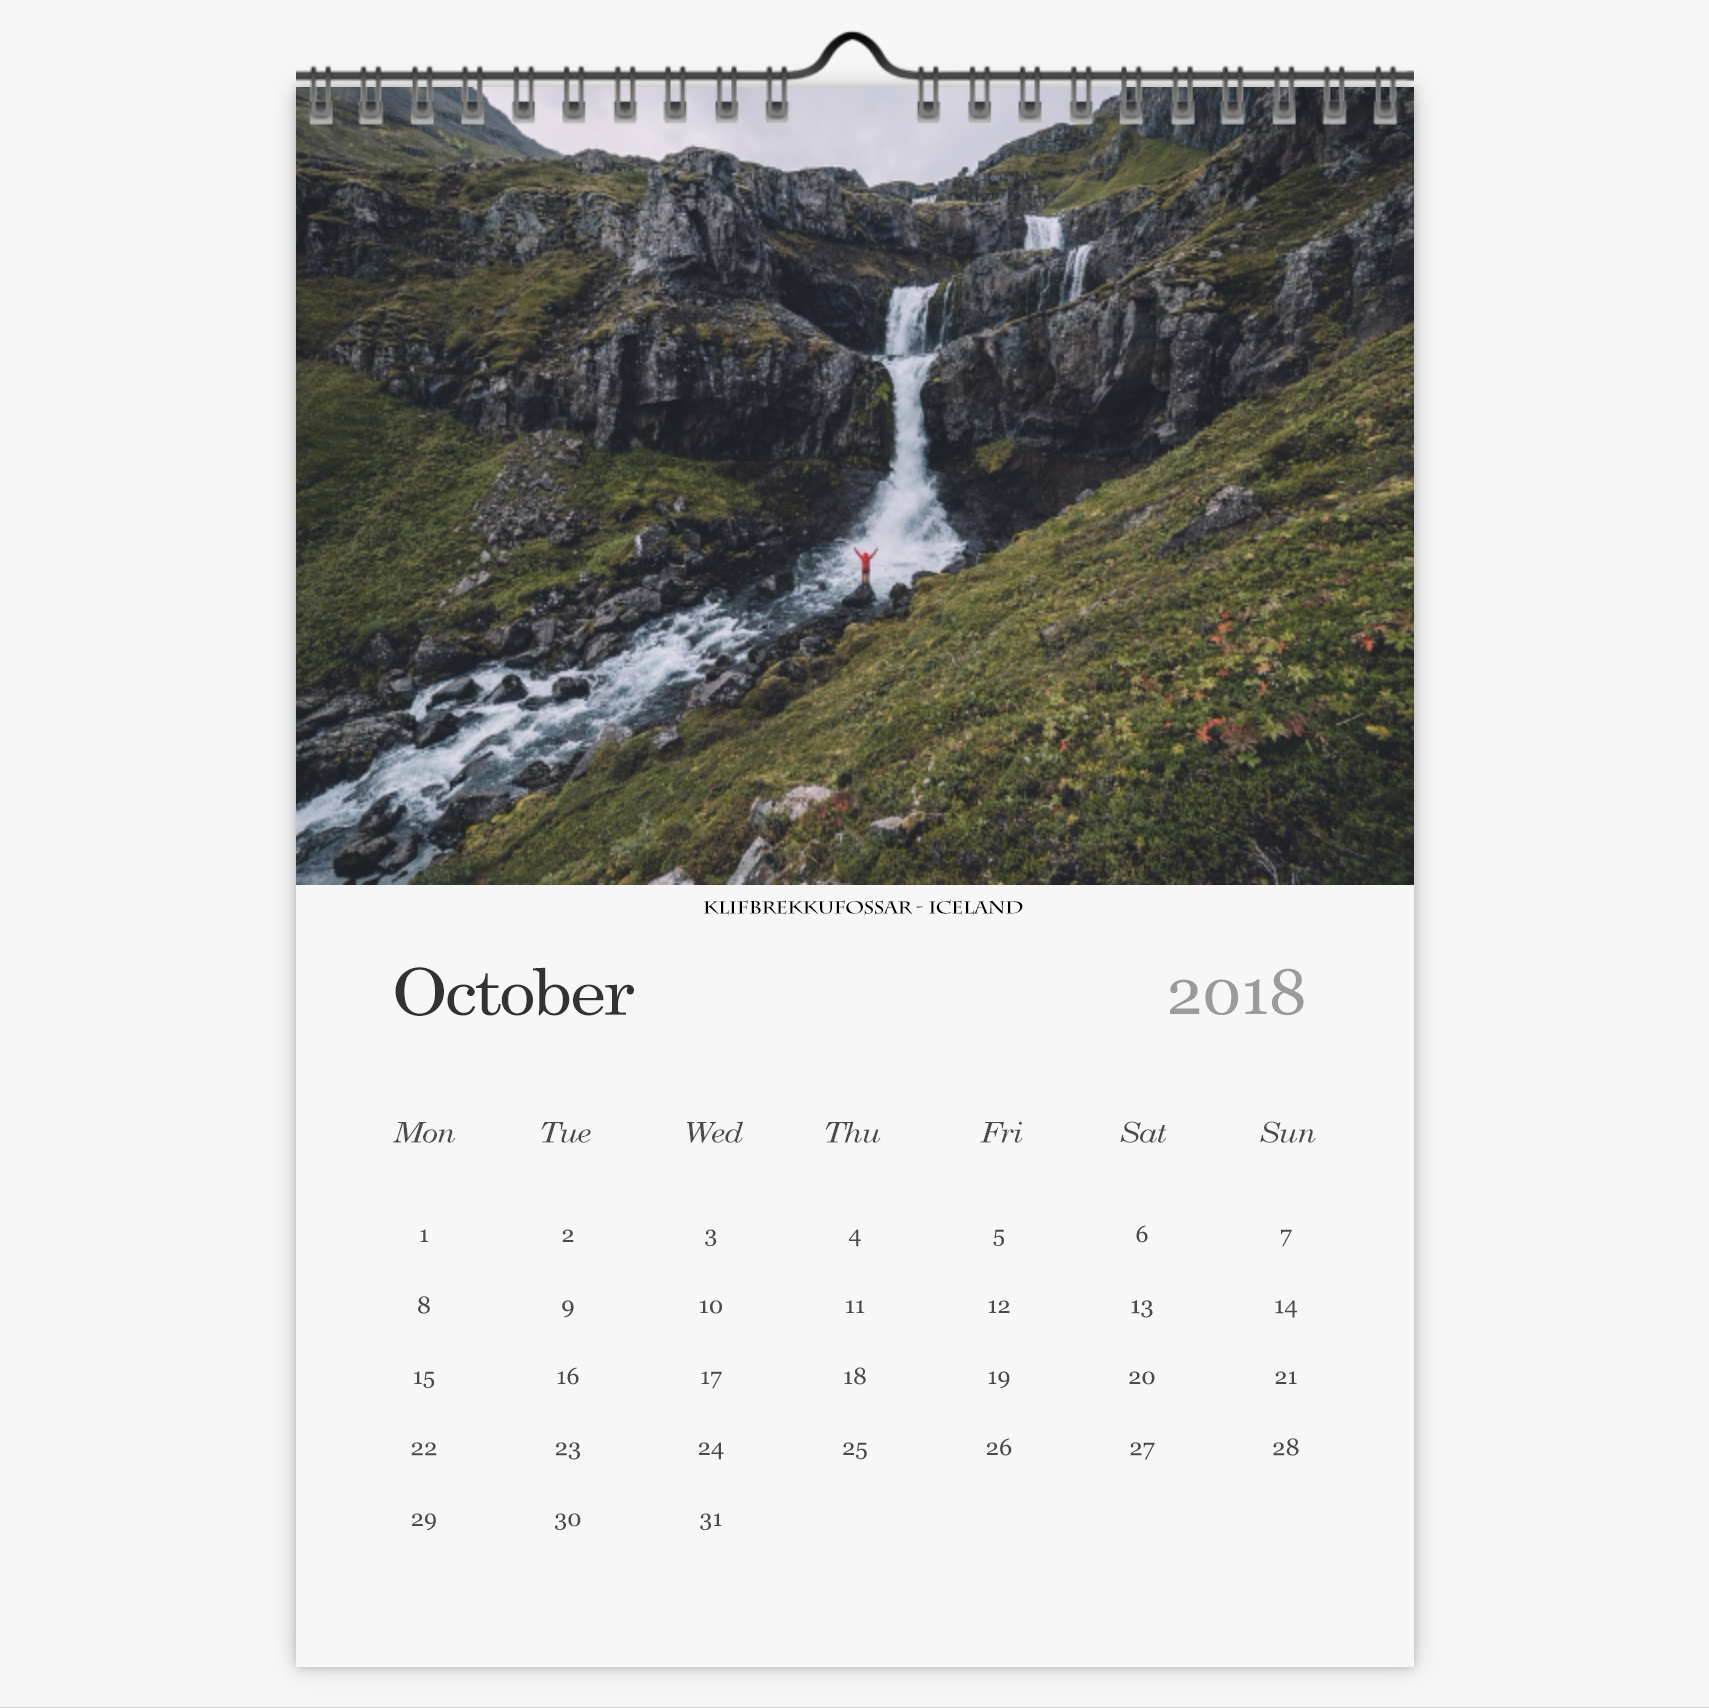 Chris Eyre-Walker Photography 2018 Calendar October